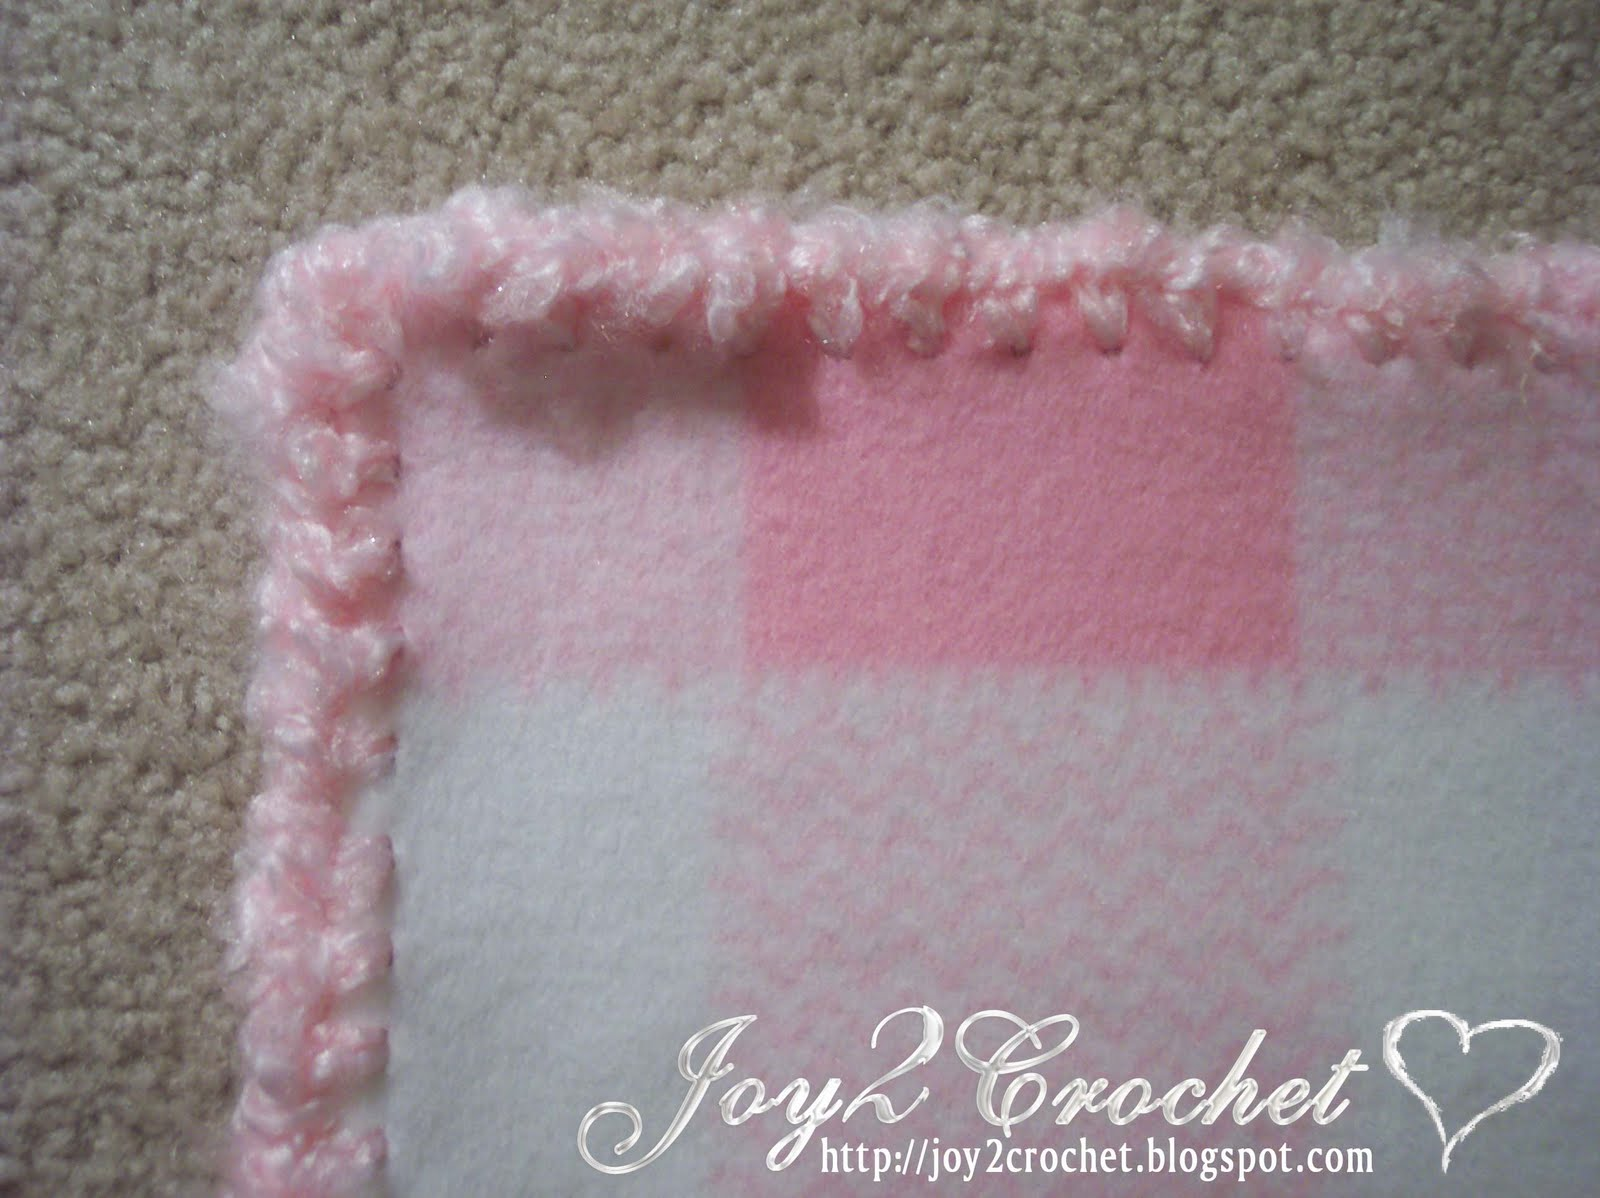 Joy 2 Crochet More Crocheted Fleece Baby Blankets Make A Crochet Blanket Using Only Sc Stitch